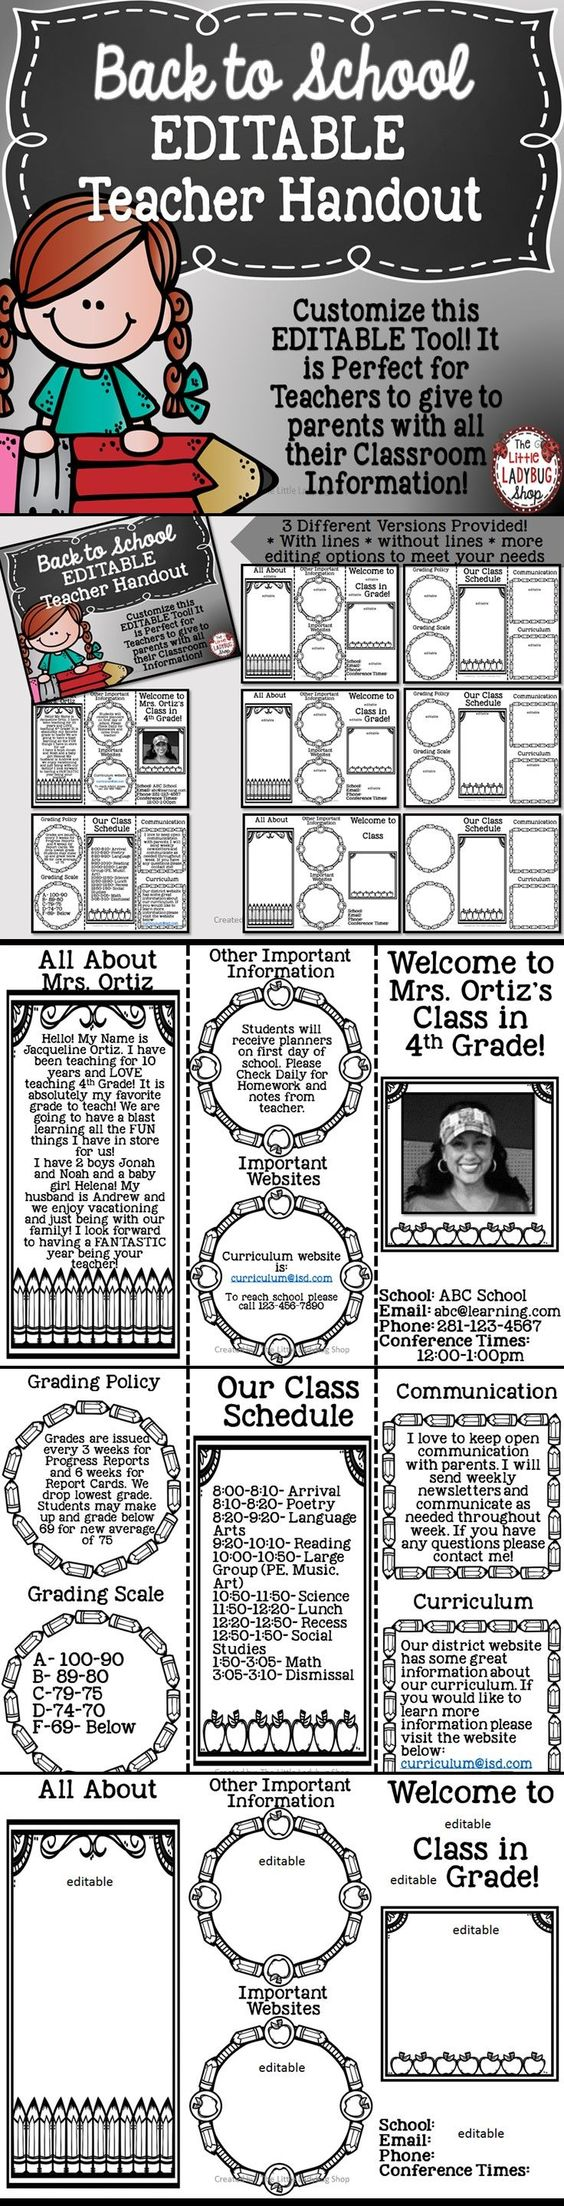 Back to school form brochure meet the teacher template for Meet the teacher brochure template